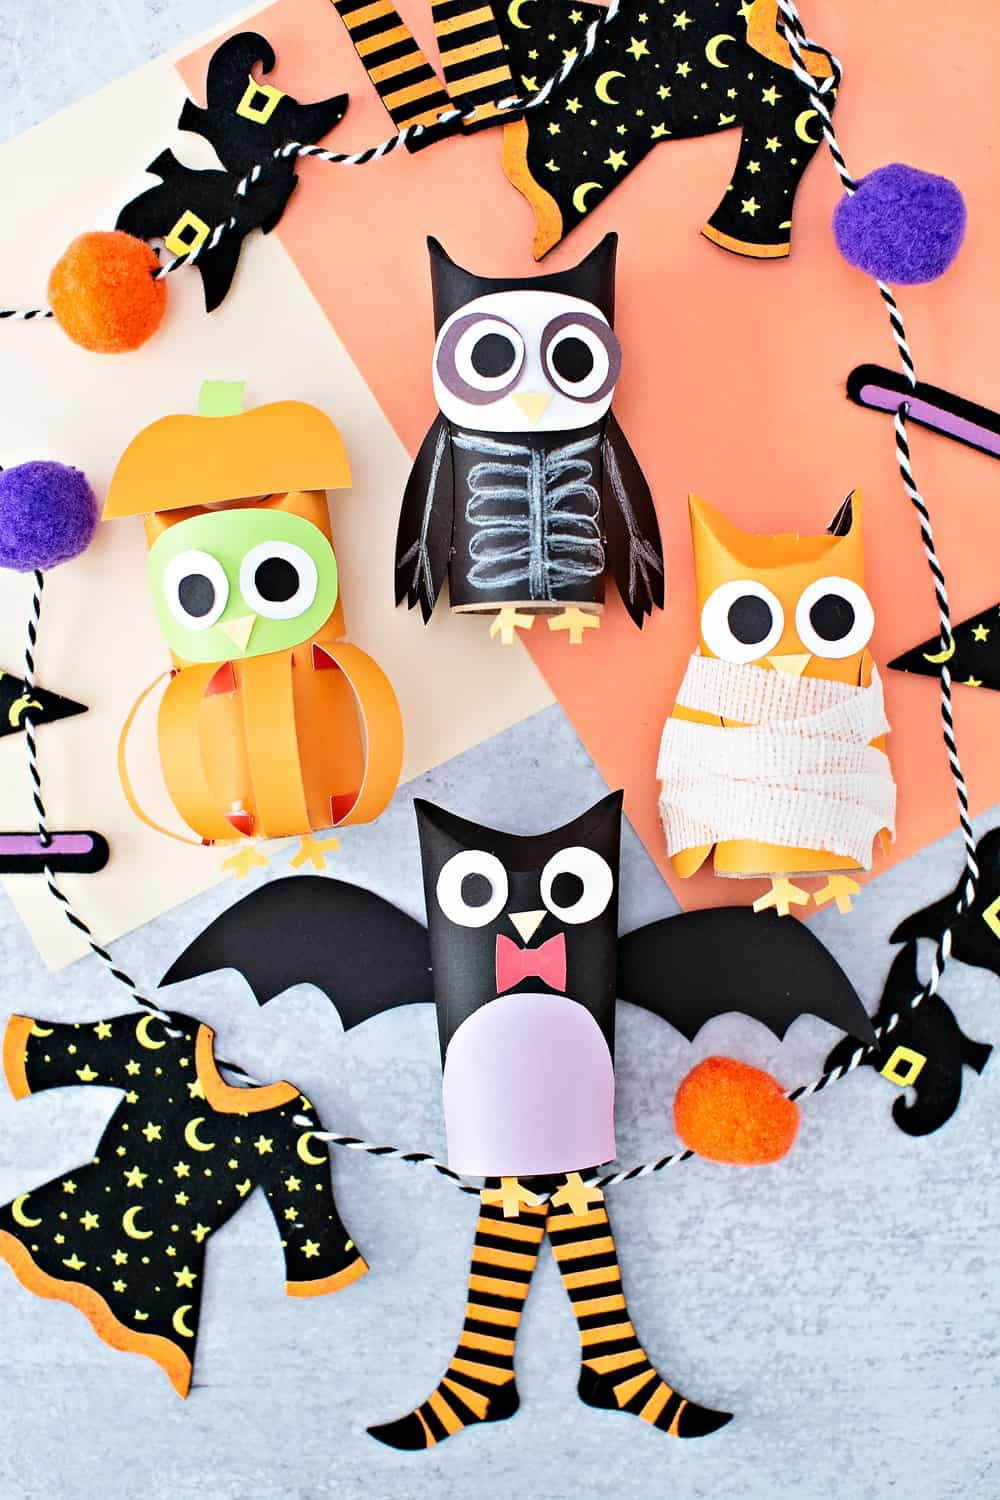 7 Easy Halloween Crafts and Hands-On Activities to do with Young Kids